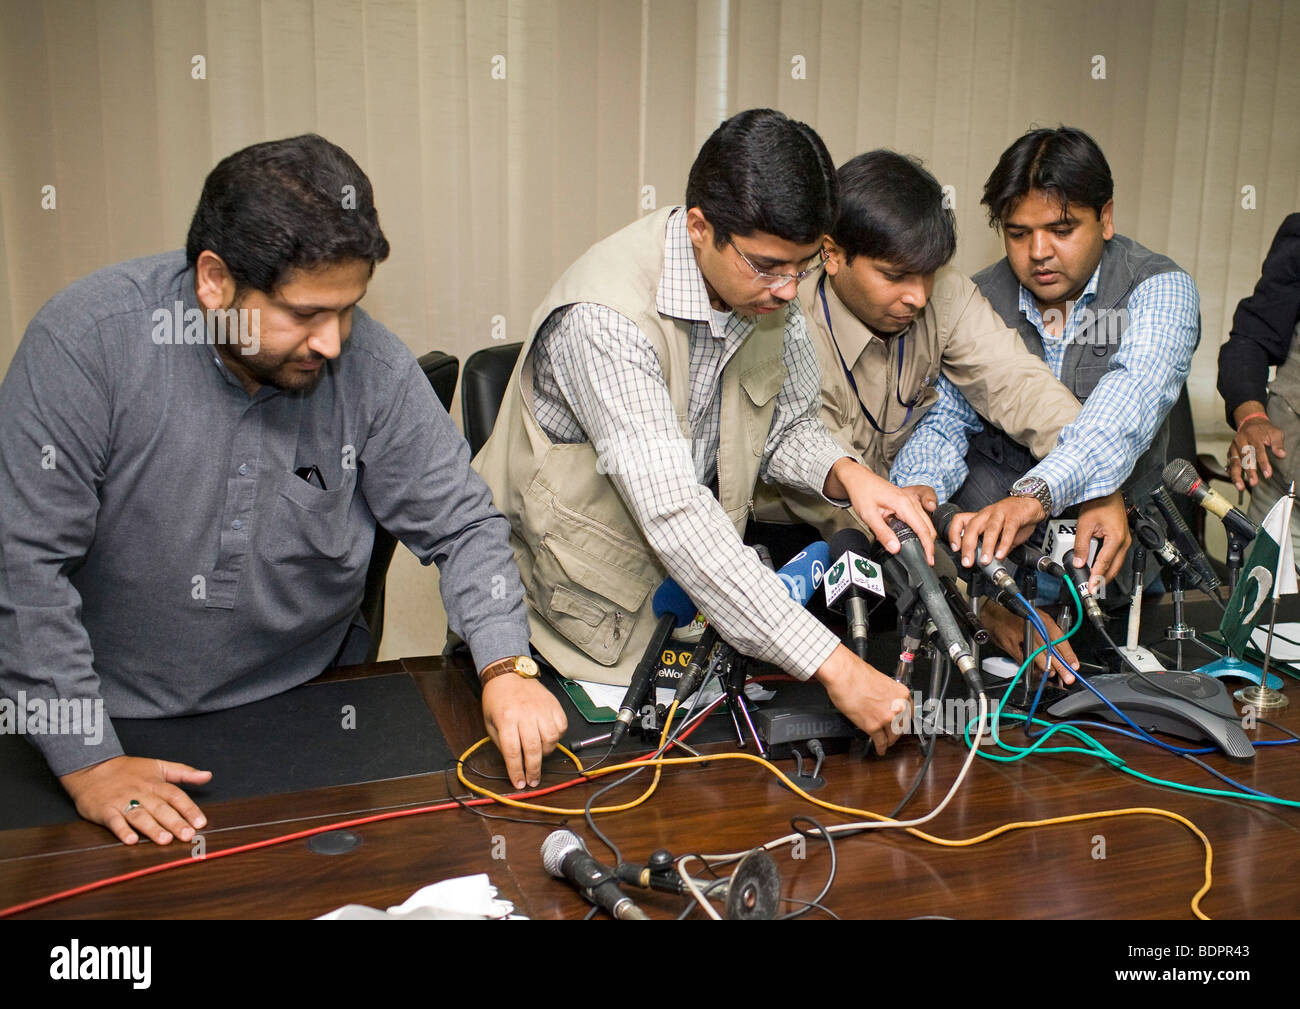 | Journalists preparing microphones - Stock Image